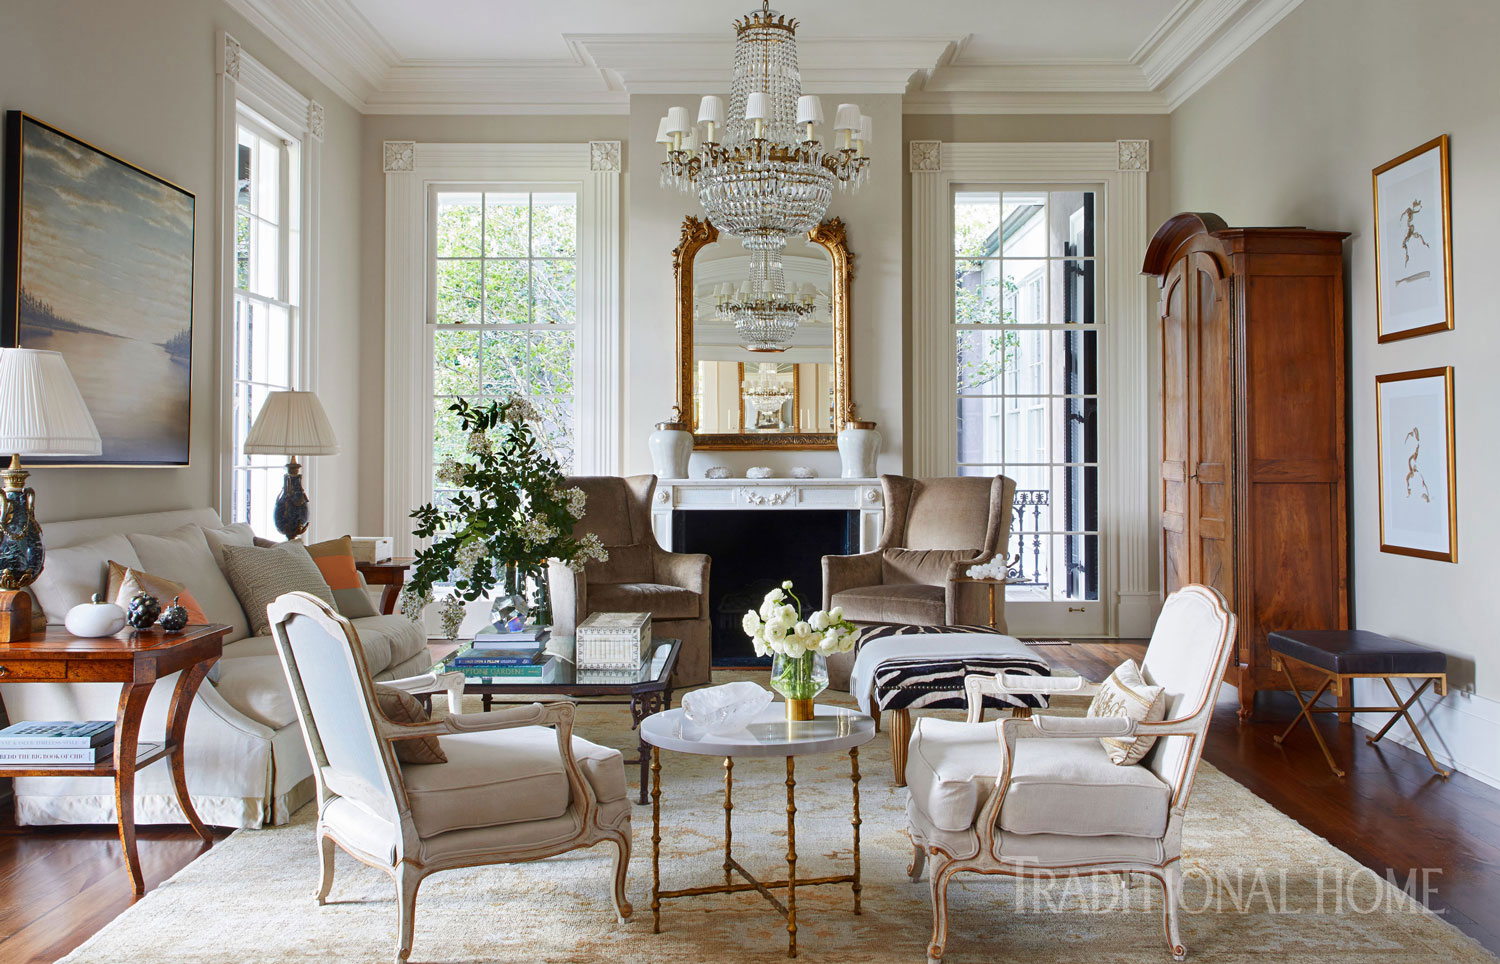 Stylishly southern mississippi home traditional home - House interior design pictures living room ...